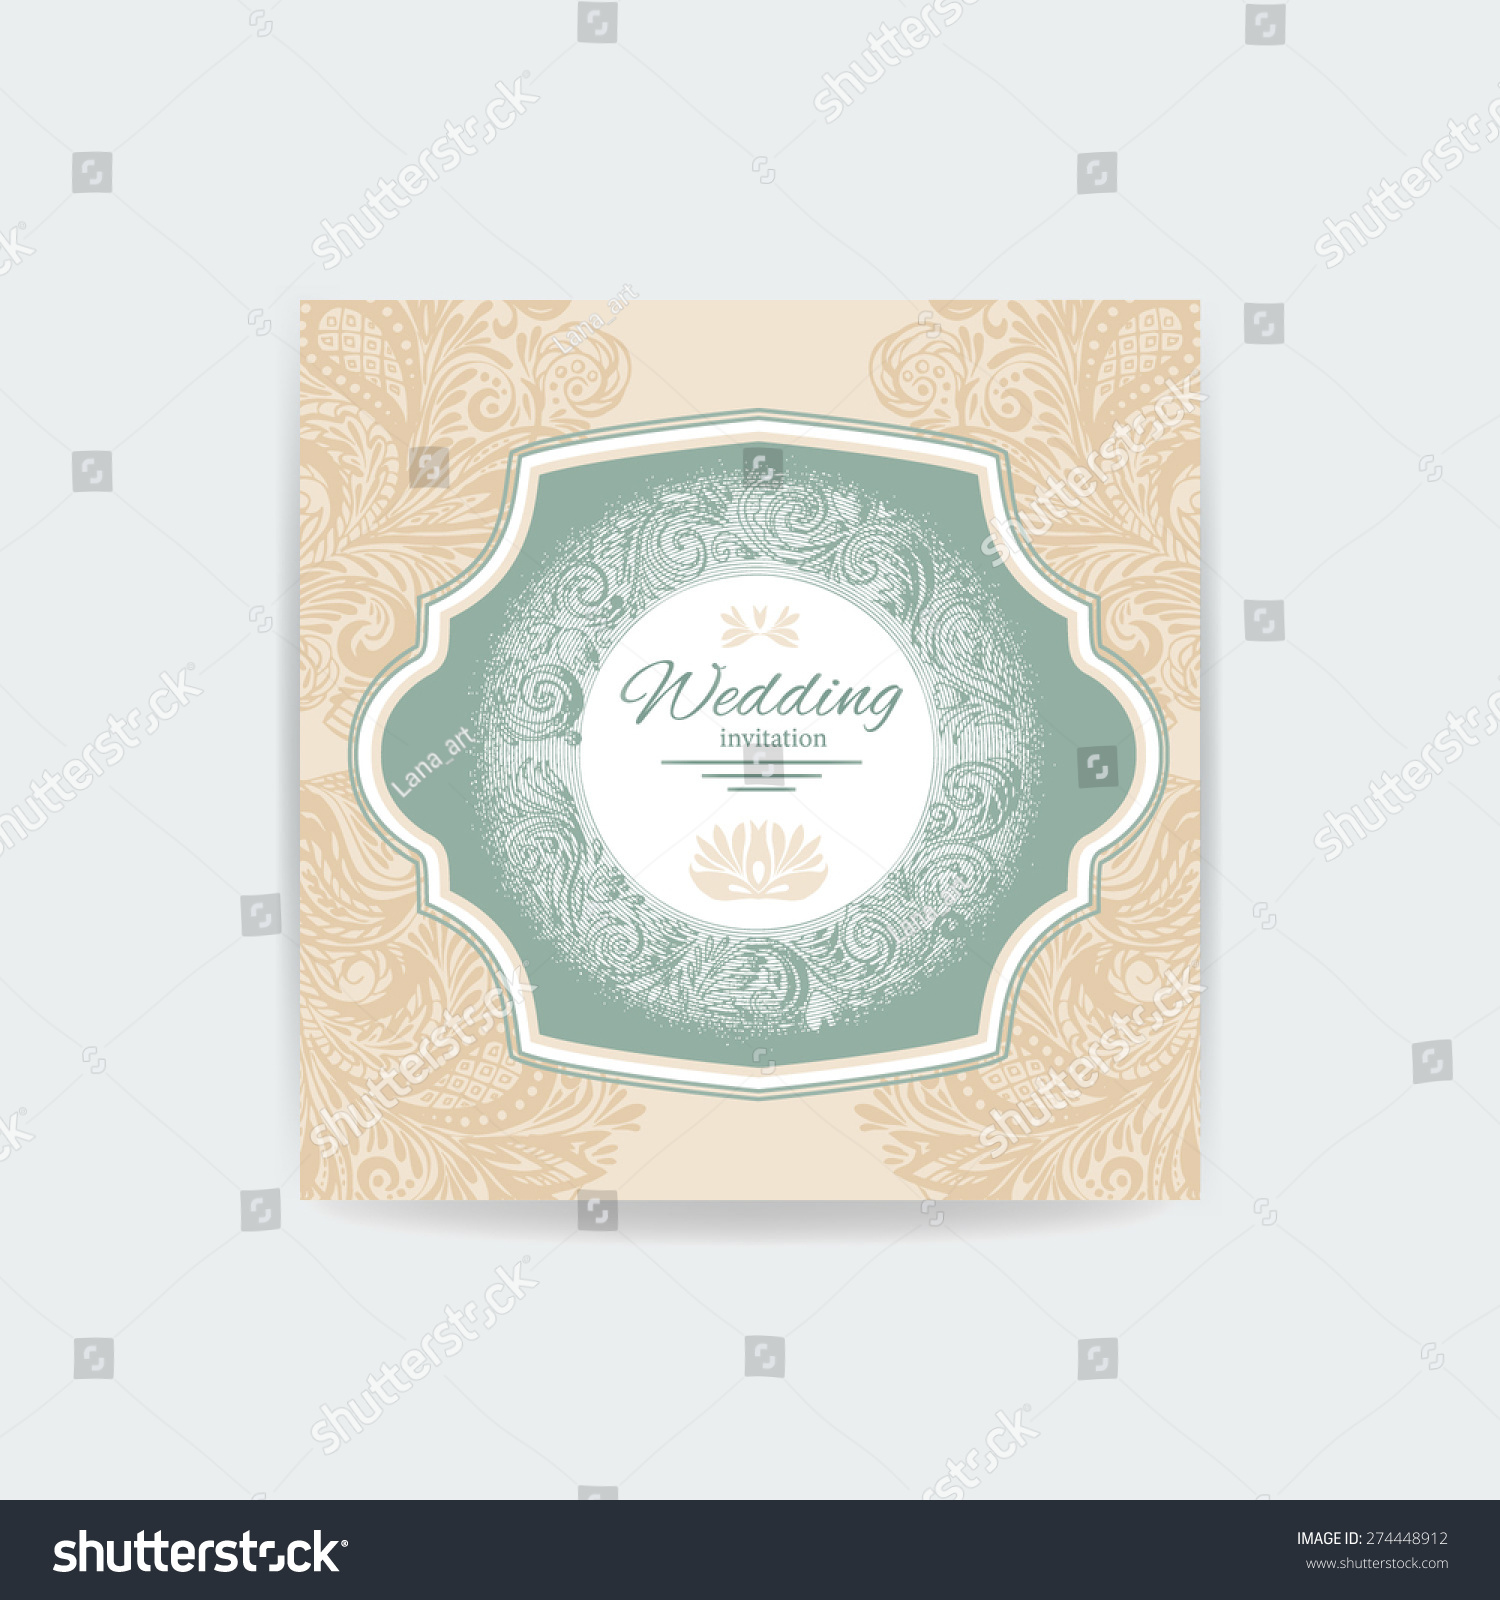 Save Date Wedding Invitationfloral Background Blank Stock Vector ...